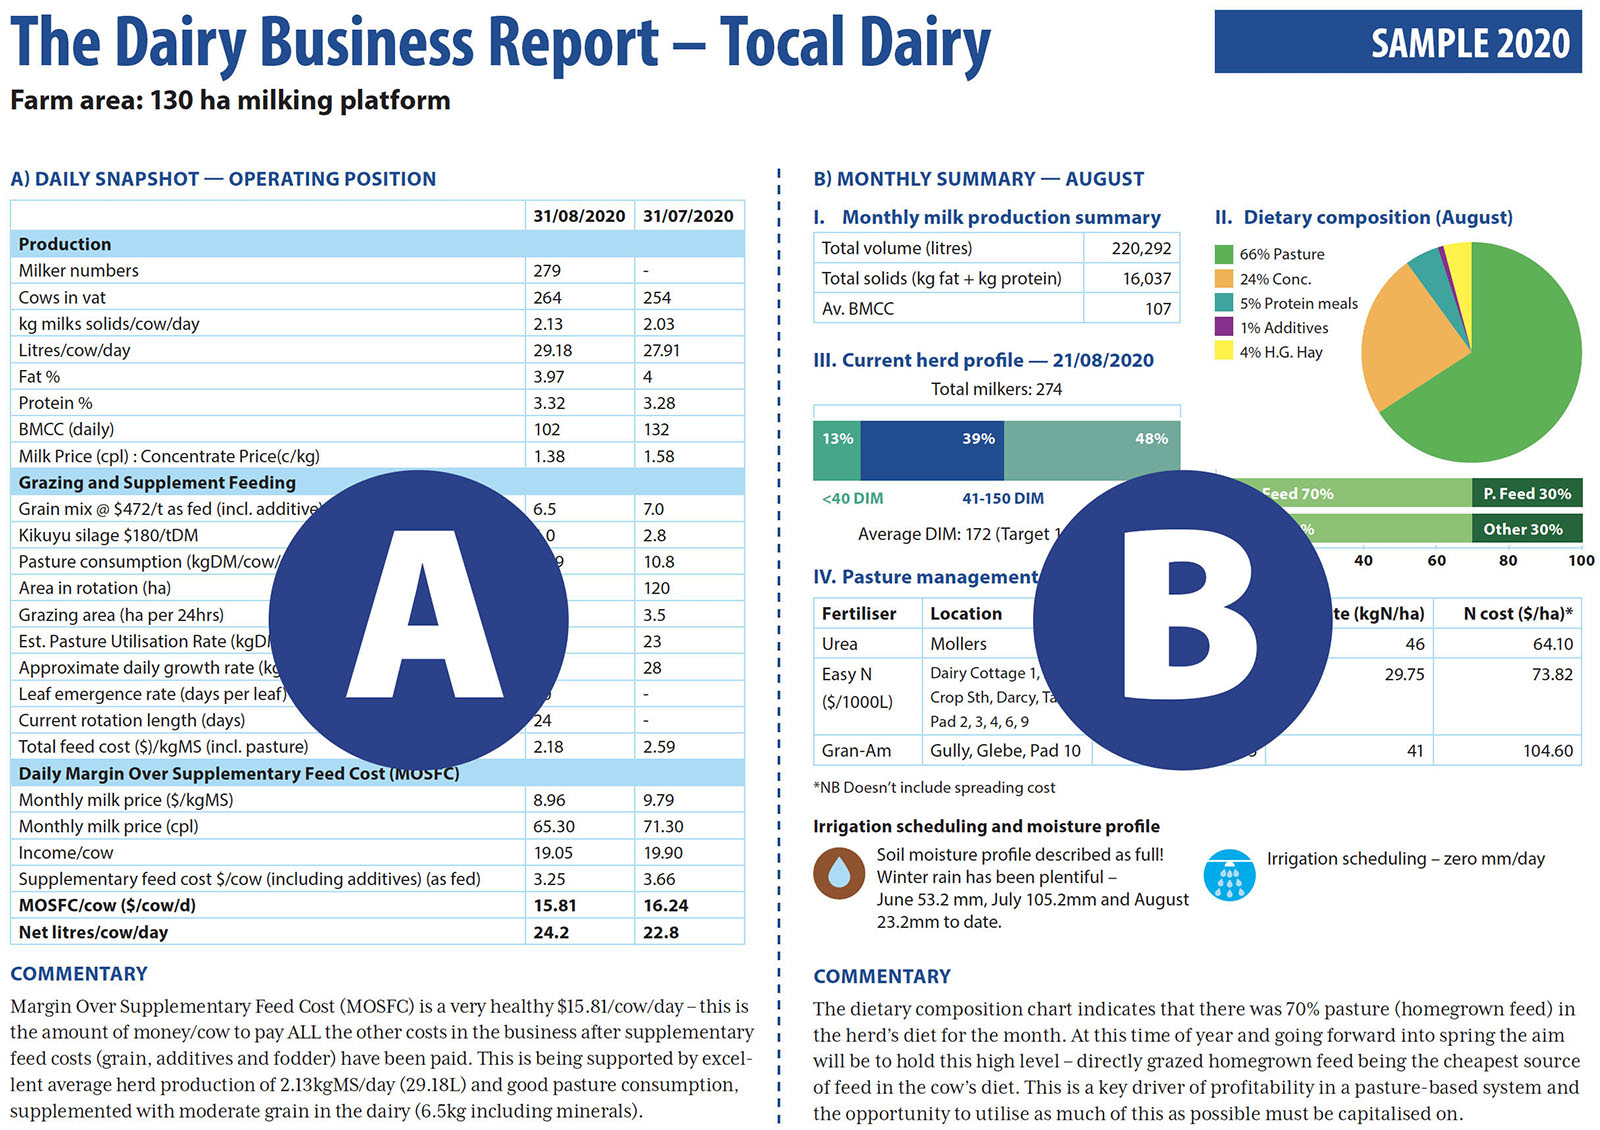 Example of Dairy Business Report